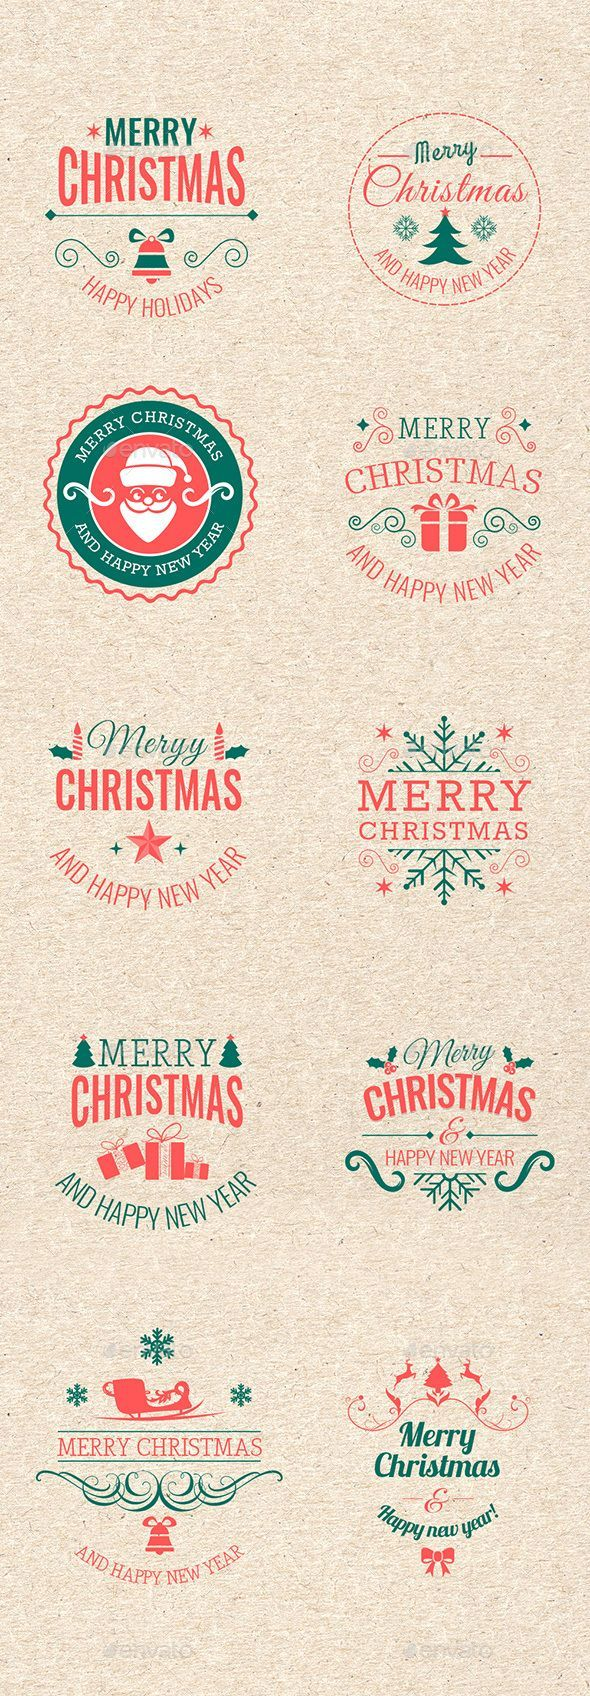 Christmas Badges #design Download: http://graphicriver.net/item/christmas-badges/13743118?ref=ksioks